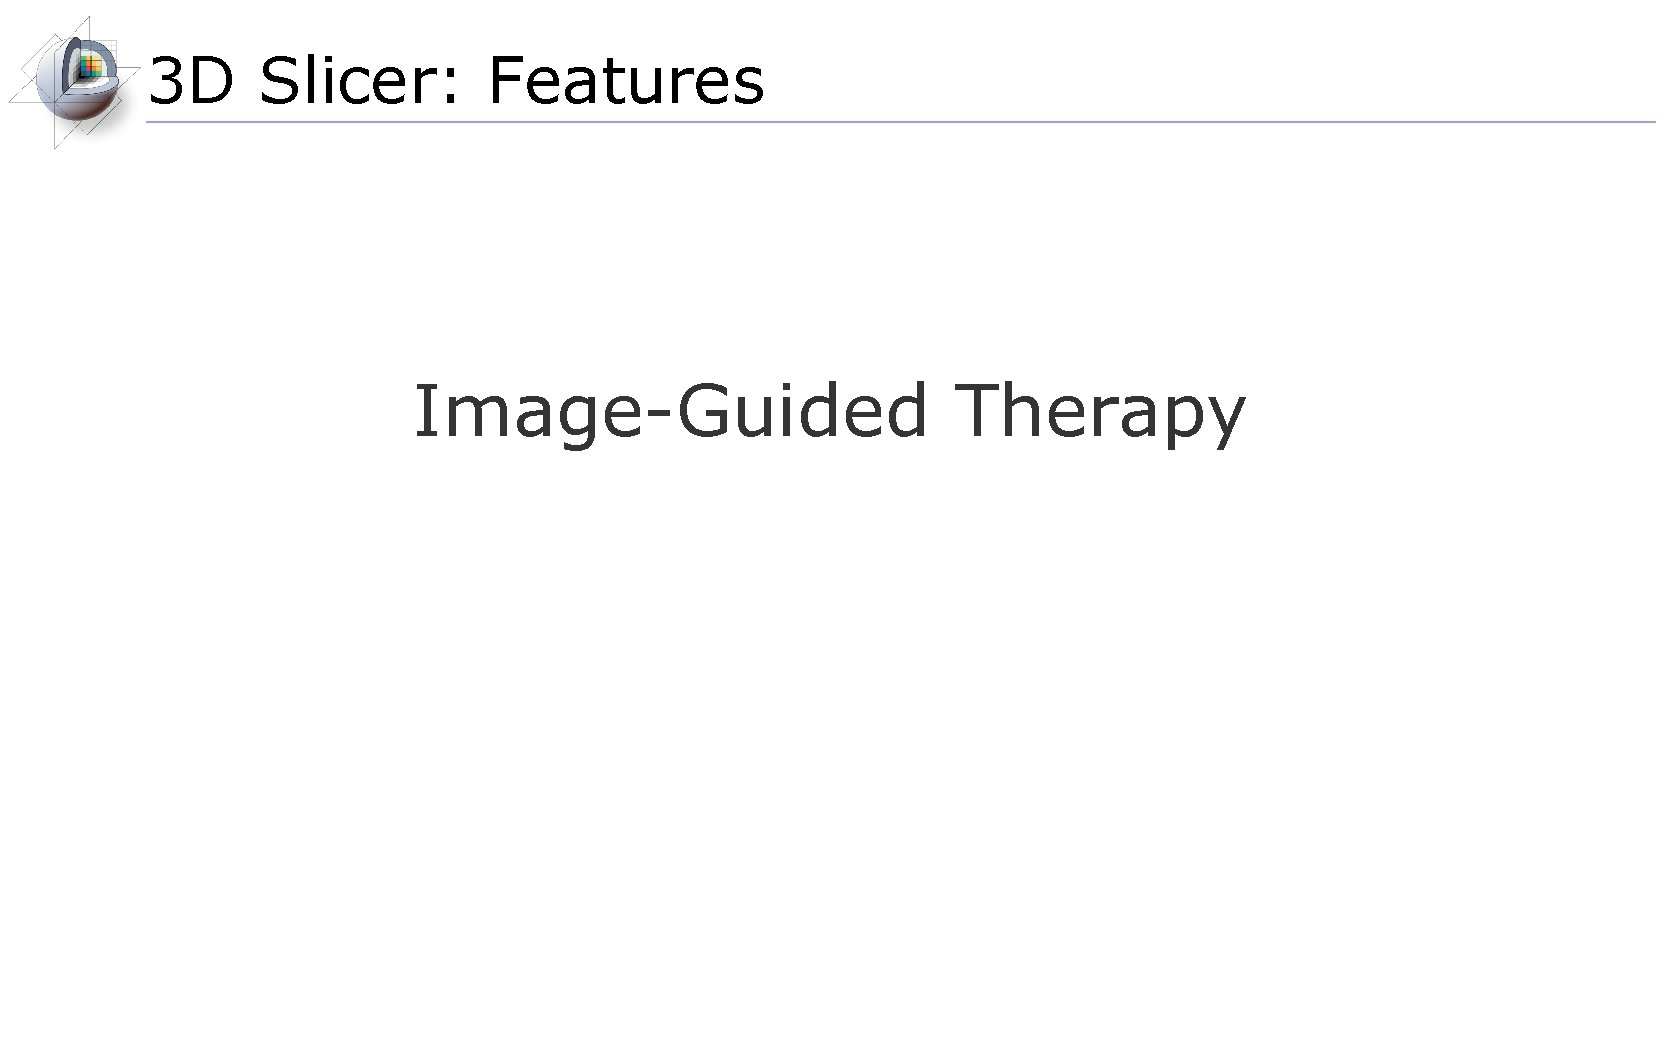 3 D Slicer: Features Image-Guided Therapy